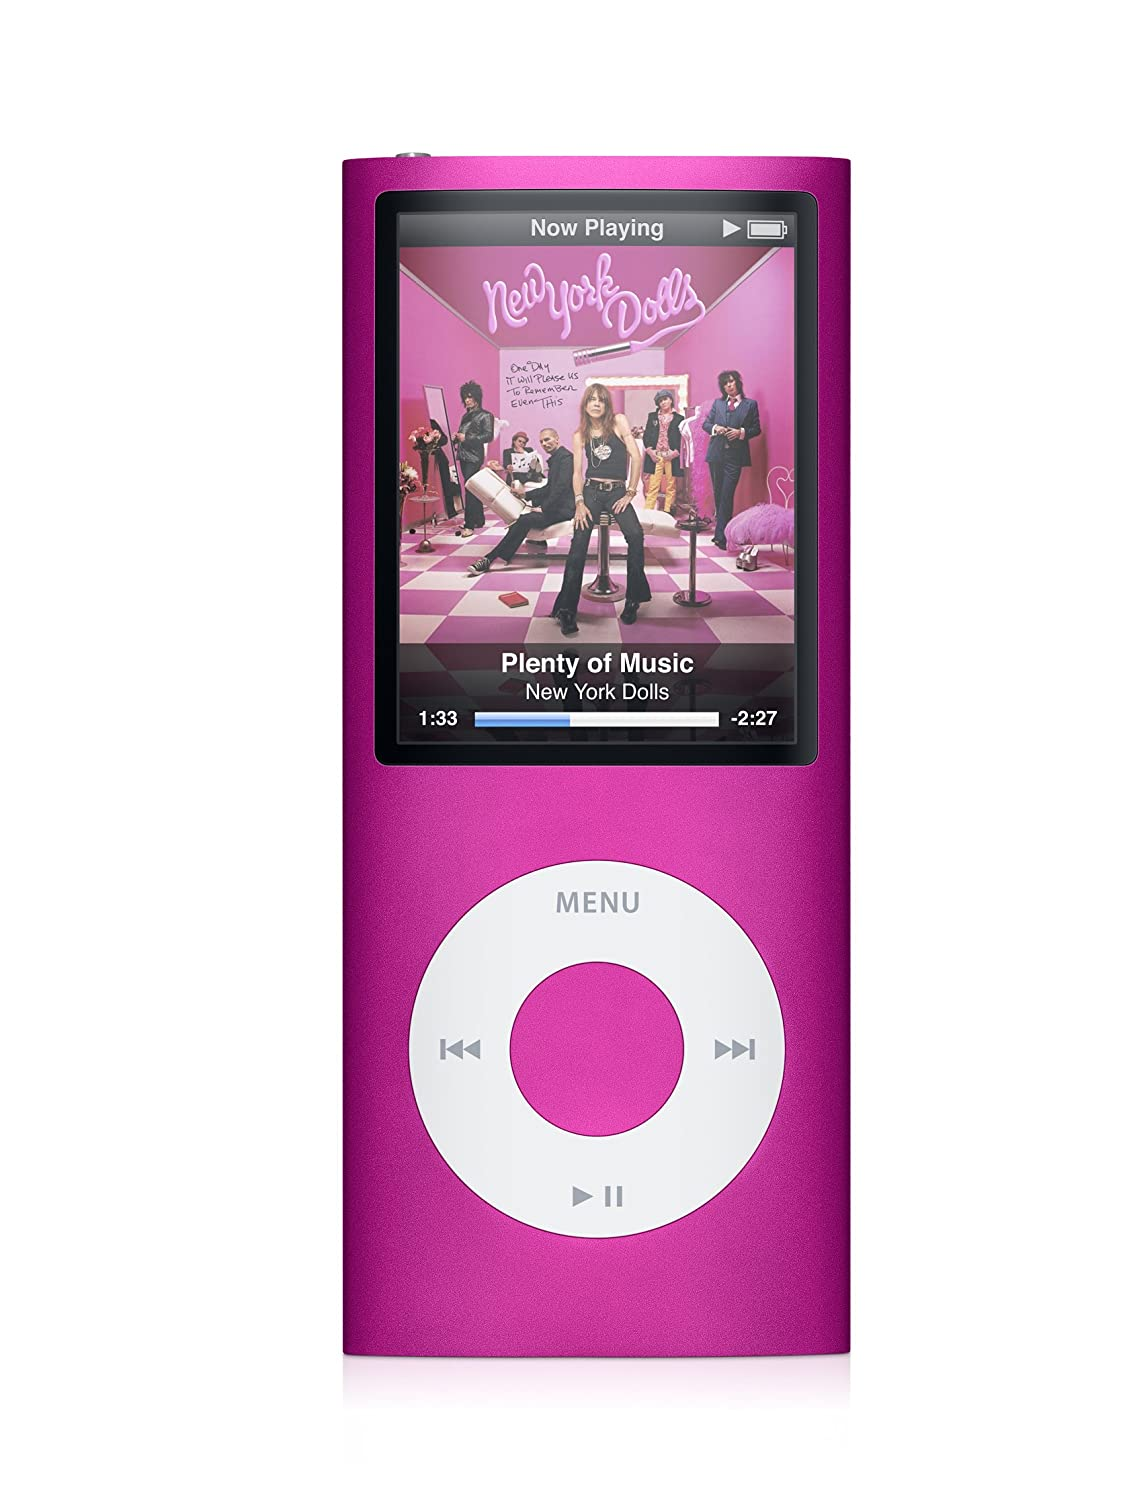 Amazon.com: Apple iPod nano 8 GB Pink (4th Generation) (Discontinued by  Manufacturer): Home Audio & Theater